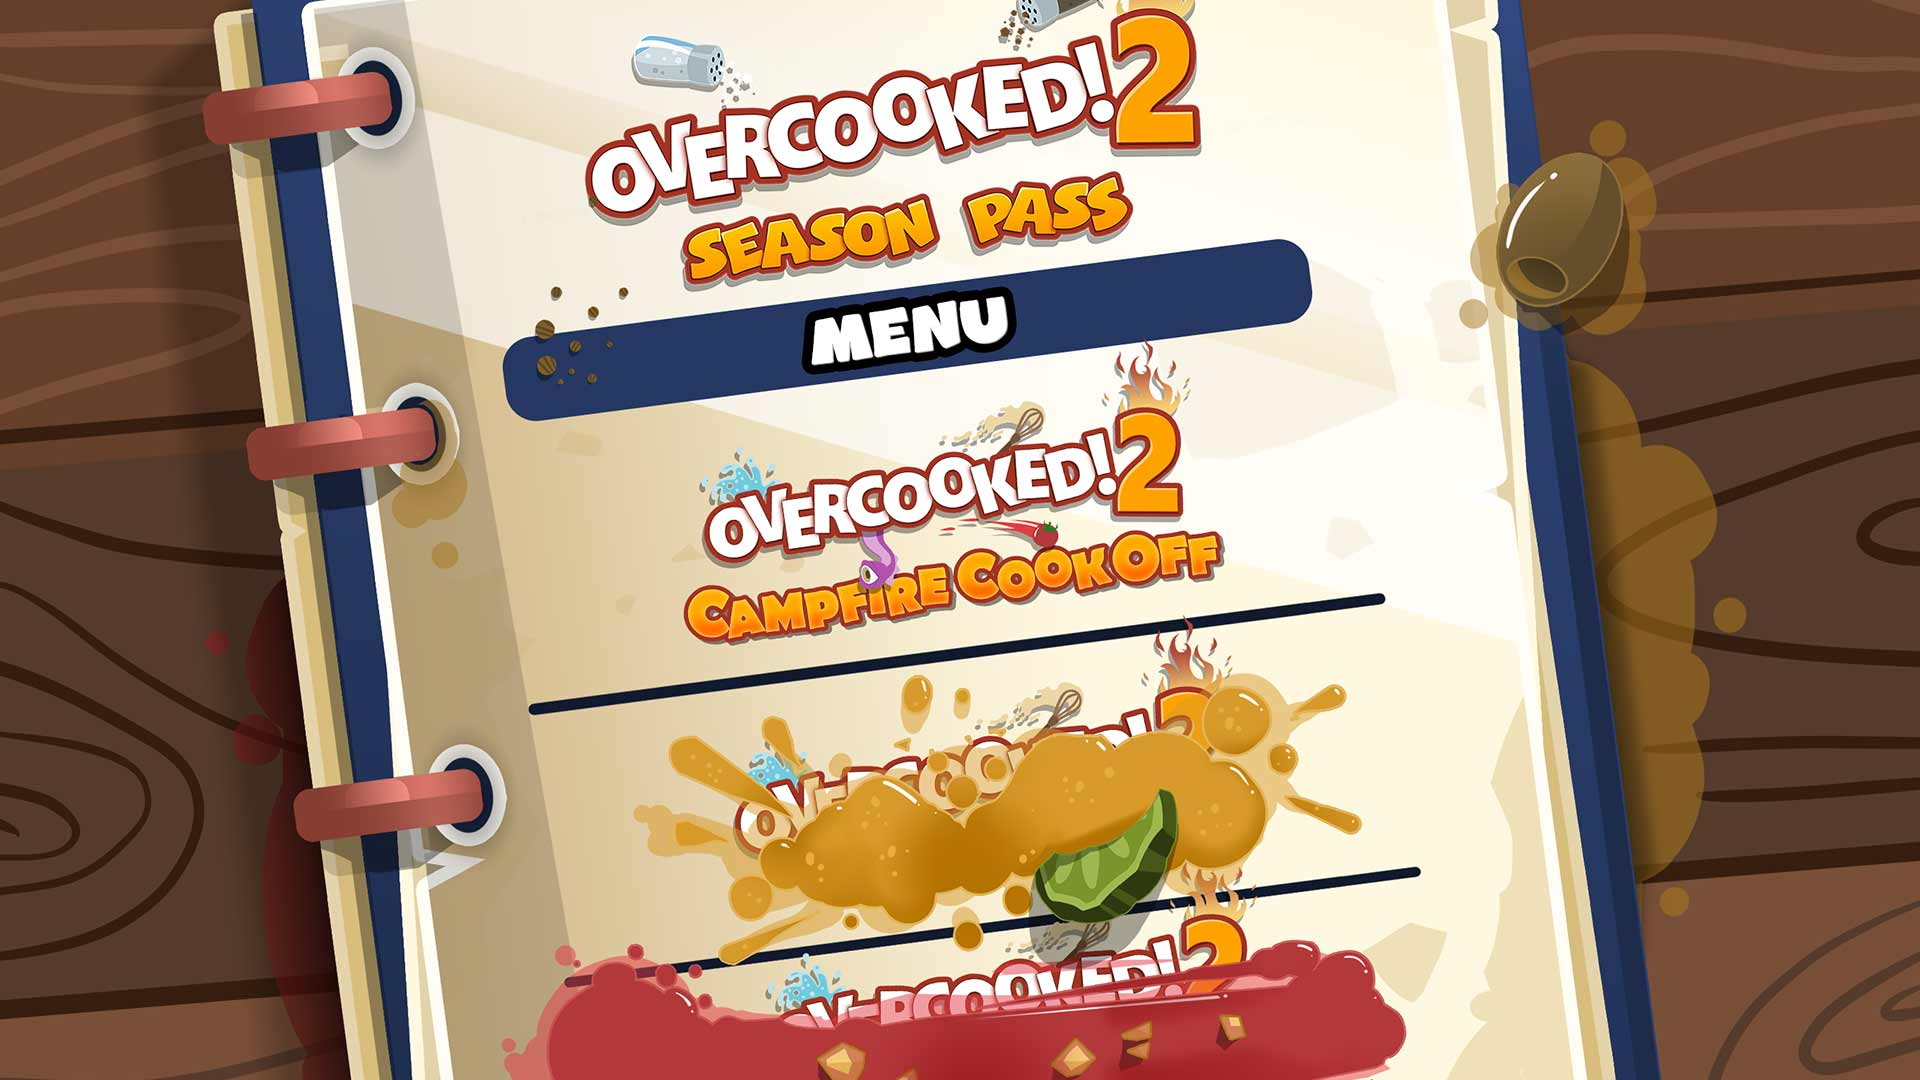 Overcooked 2 switch digital